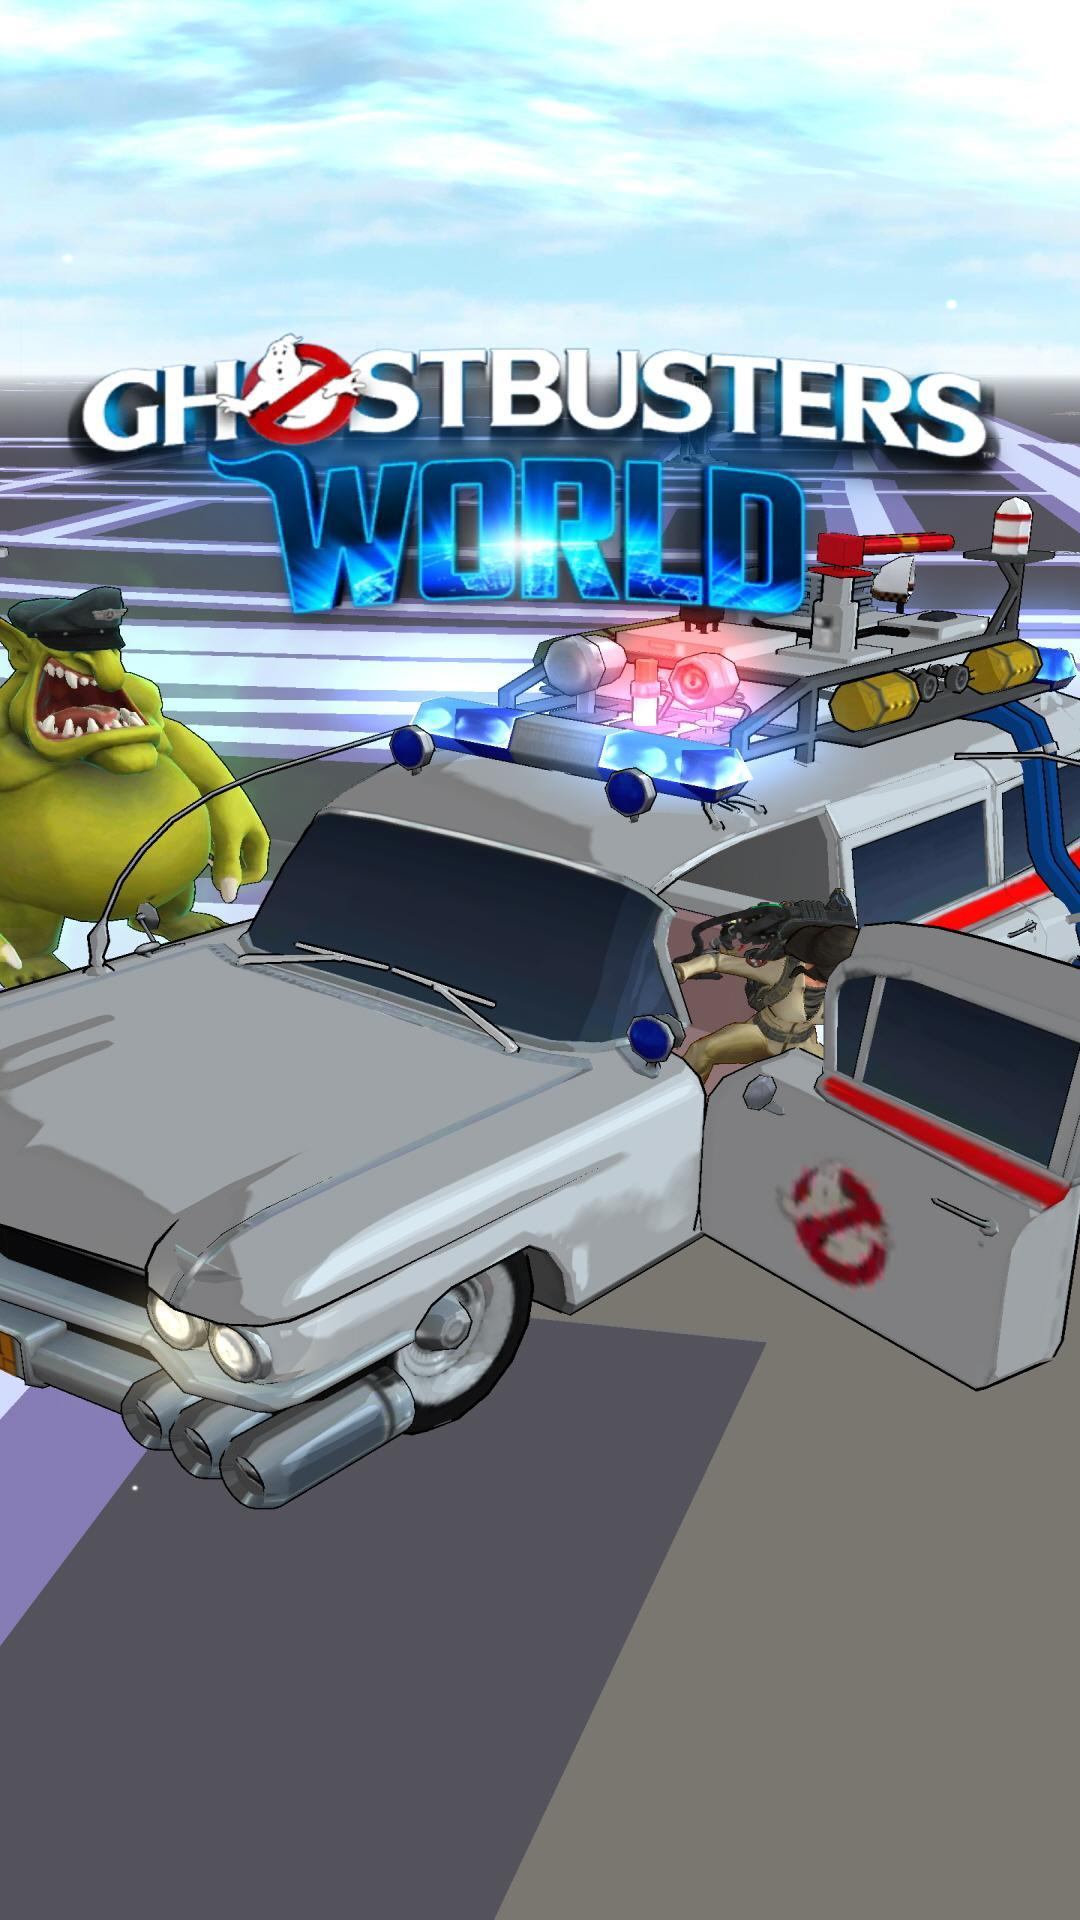 Ghostbusters World 1.16.2 Screenshot 15